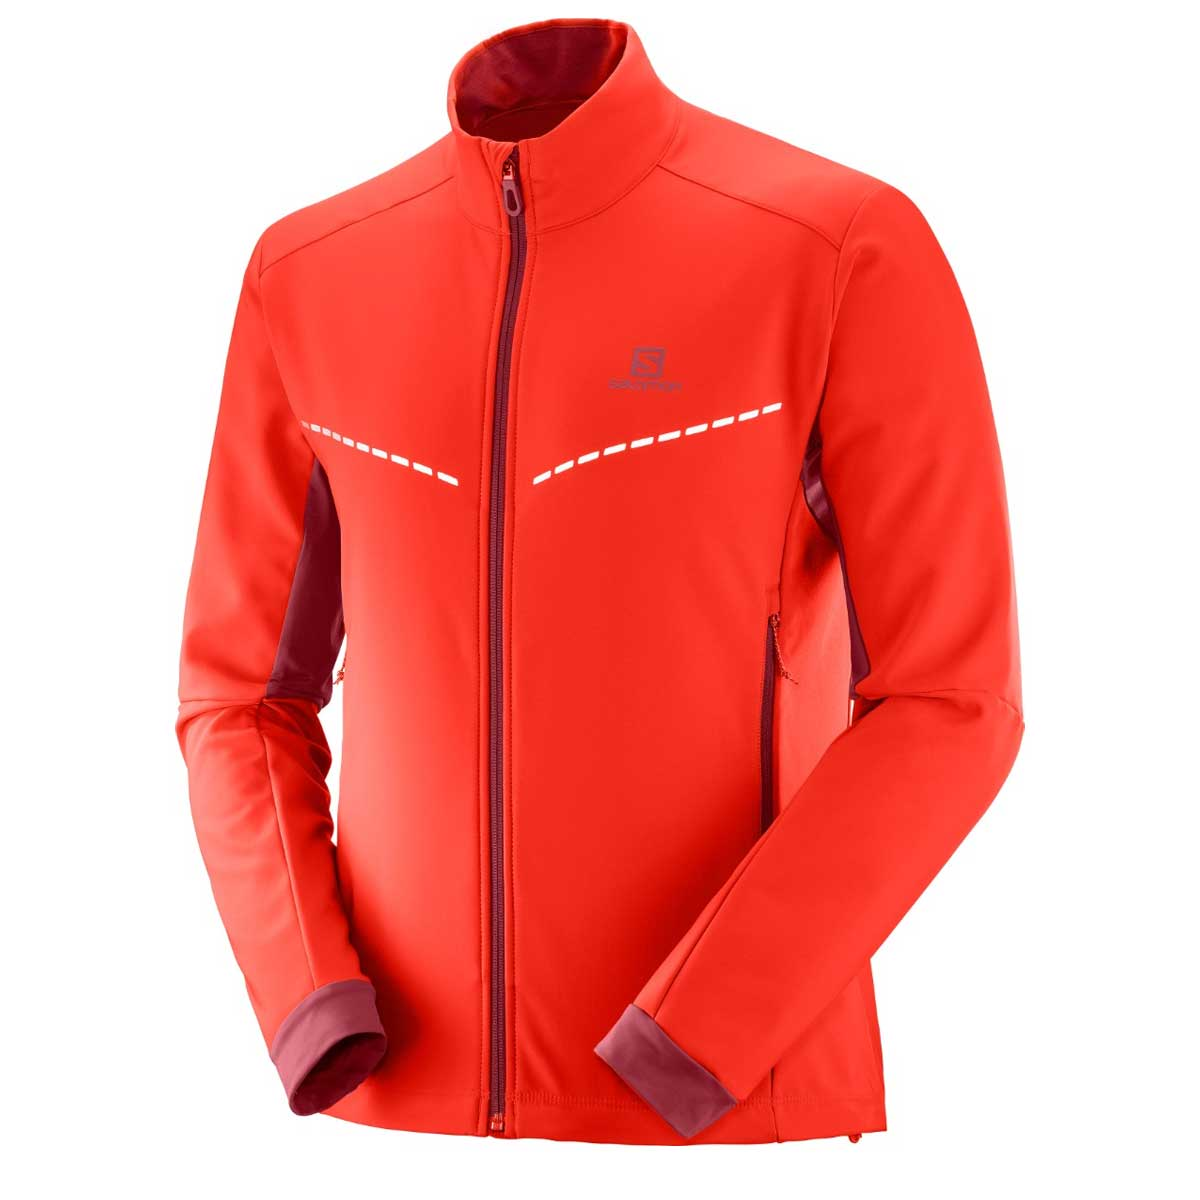 Salomon Men's Agile Softshell Jacket in Fiery Red and Biking Red